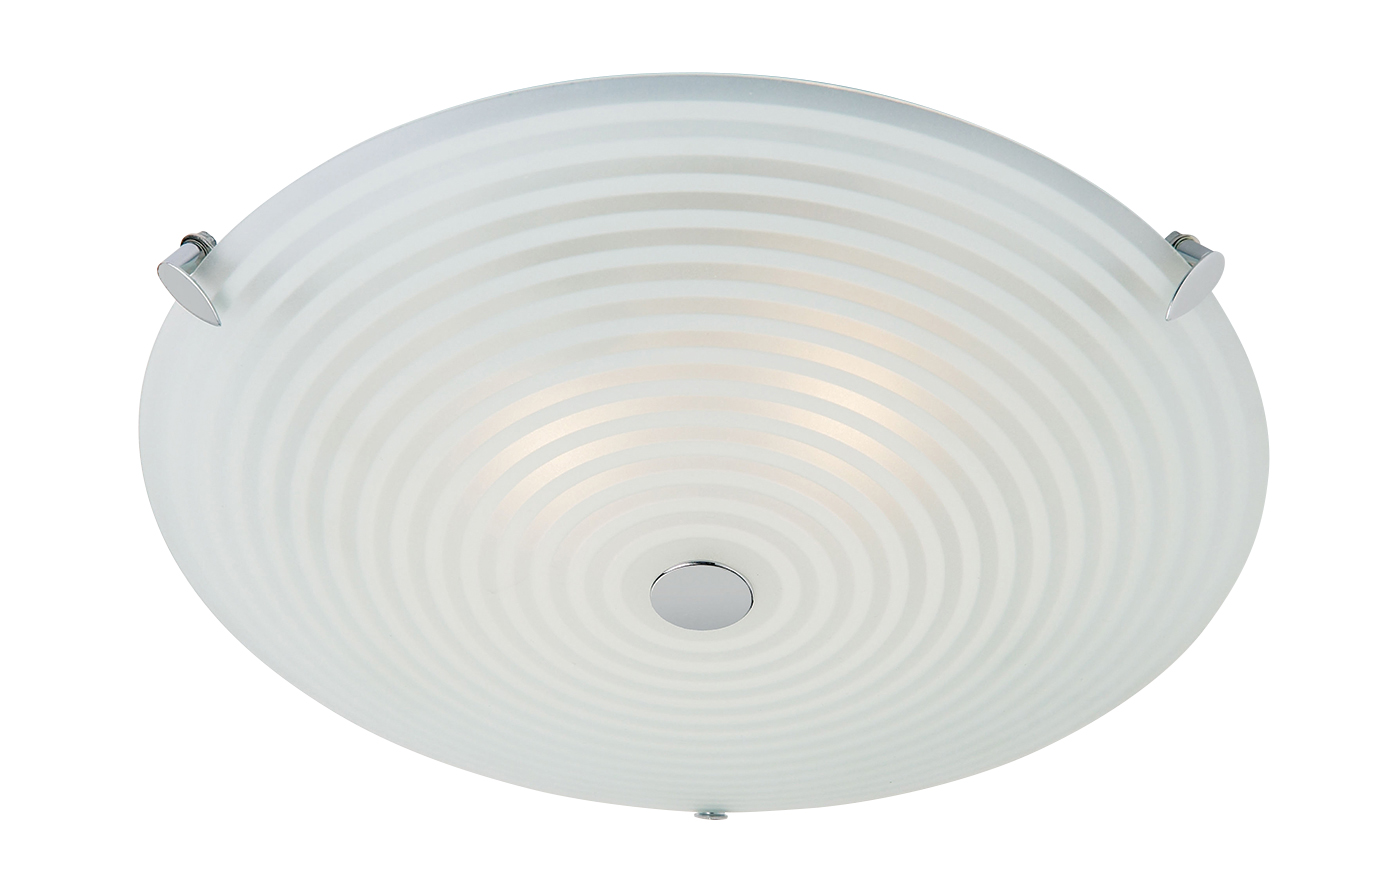 Endon Roundel flush ceiling light 2x 40W Frosted white & clear glass chrome